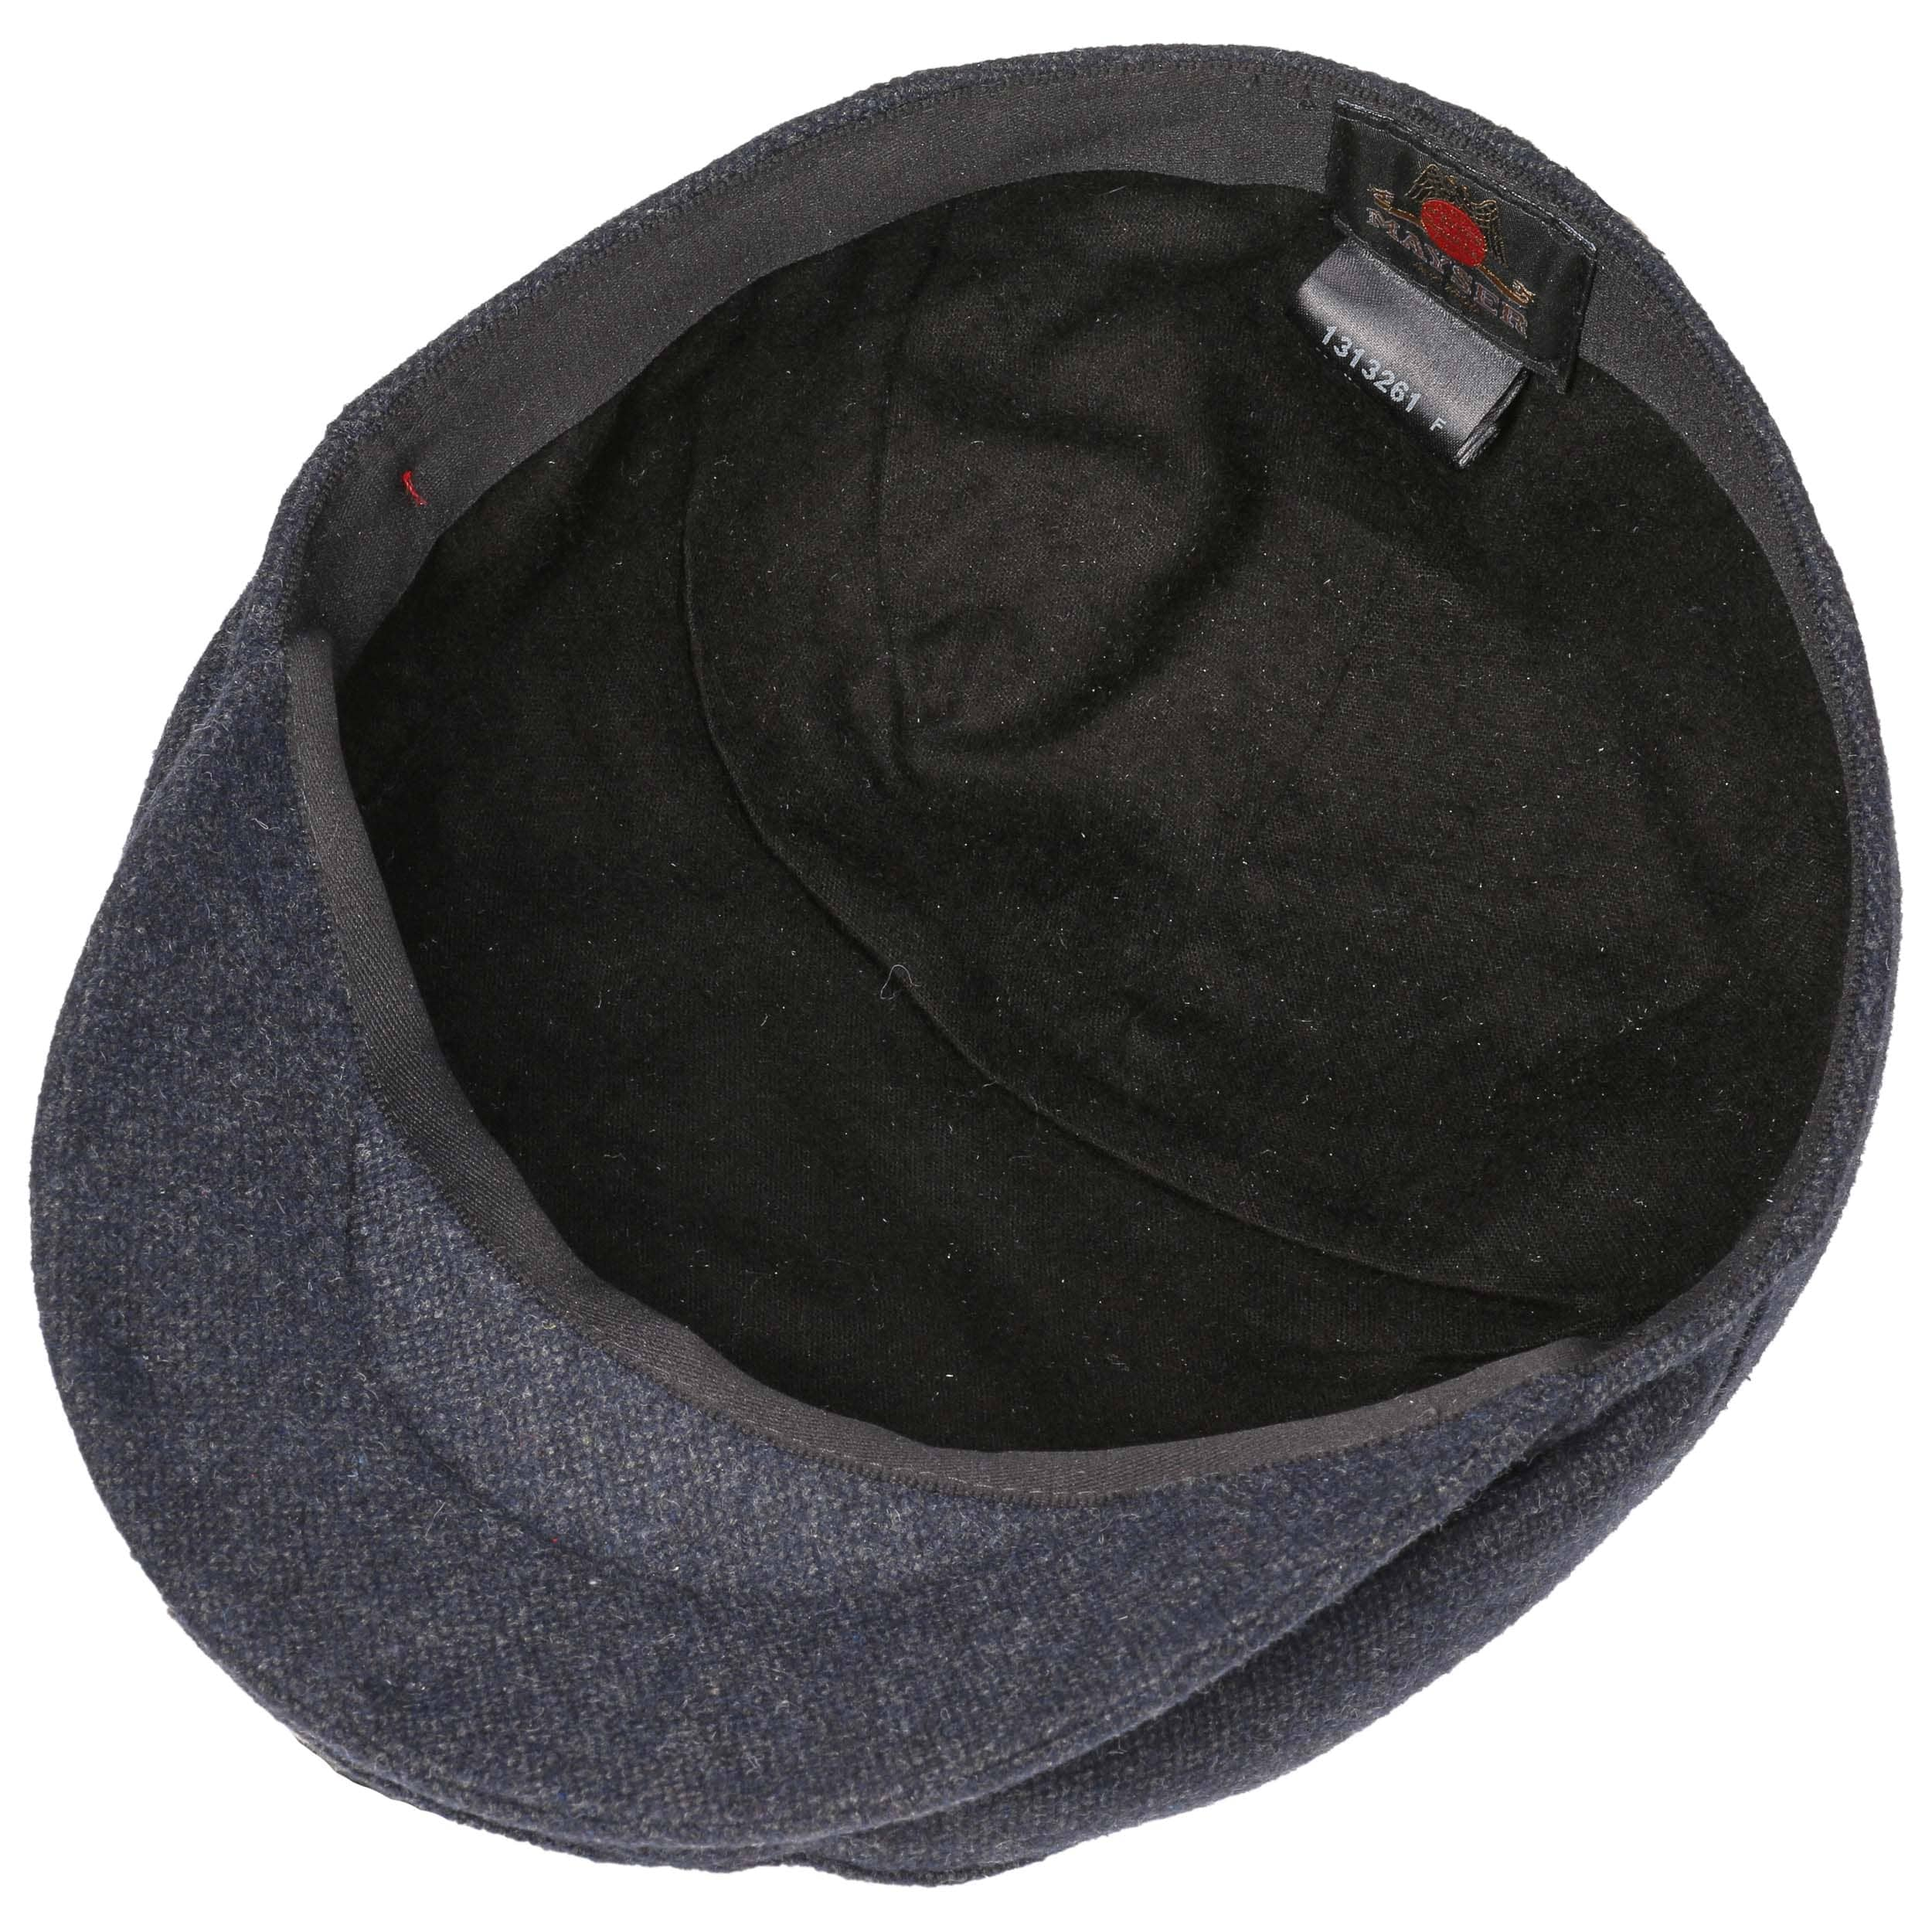 Gorra Tweed Wool by Mayser - Gorros - sombreroshop.es 2b1c504d11d